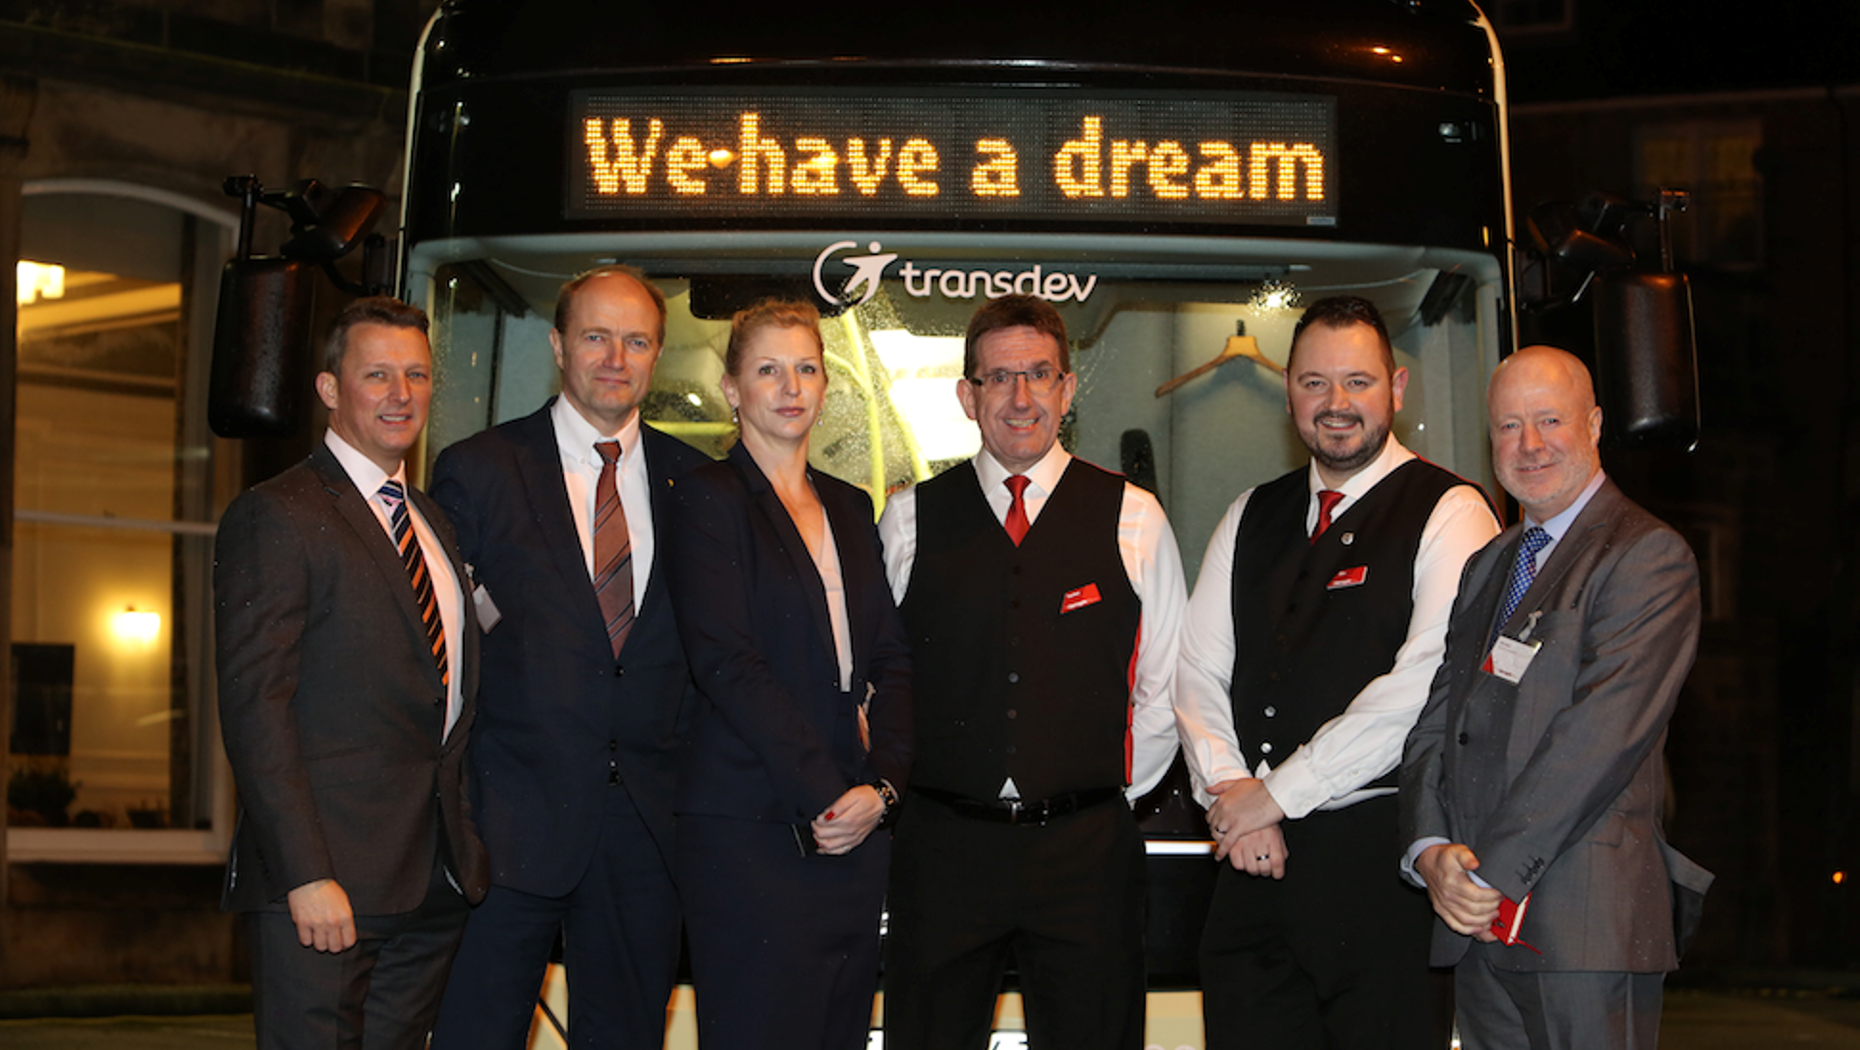 Six persons in front of a Volvo bus